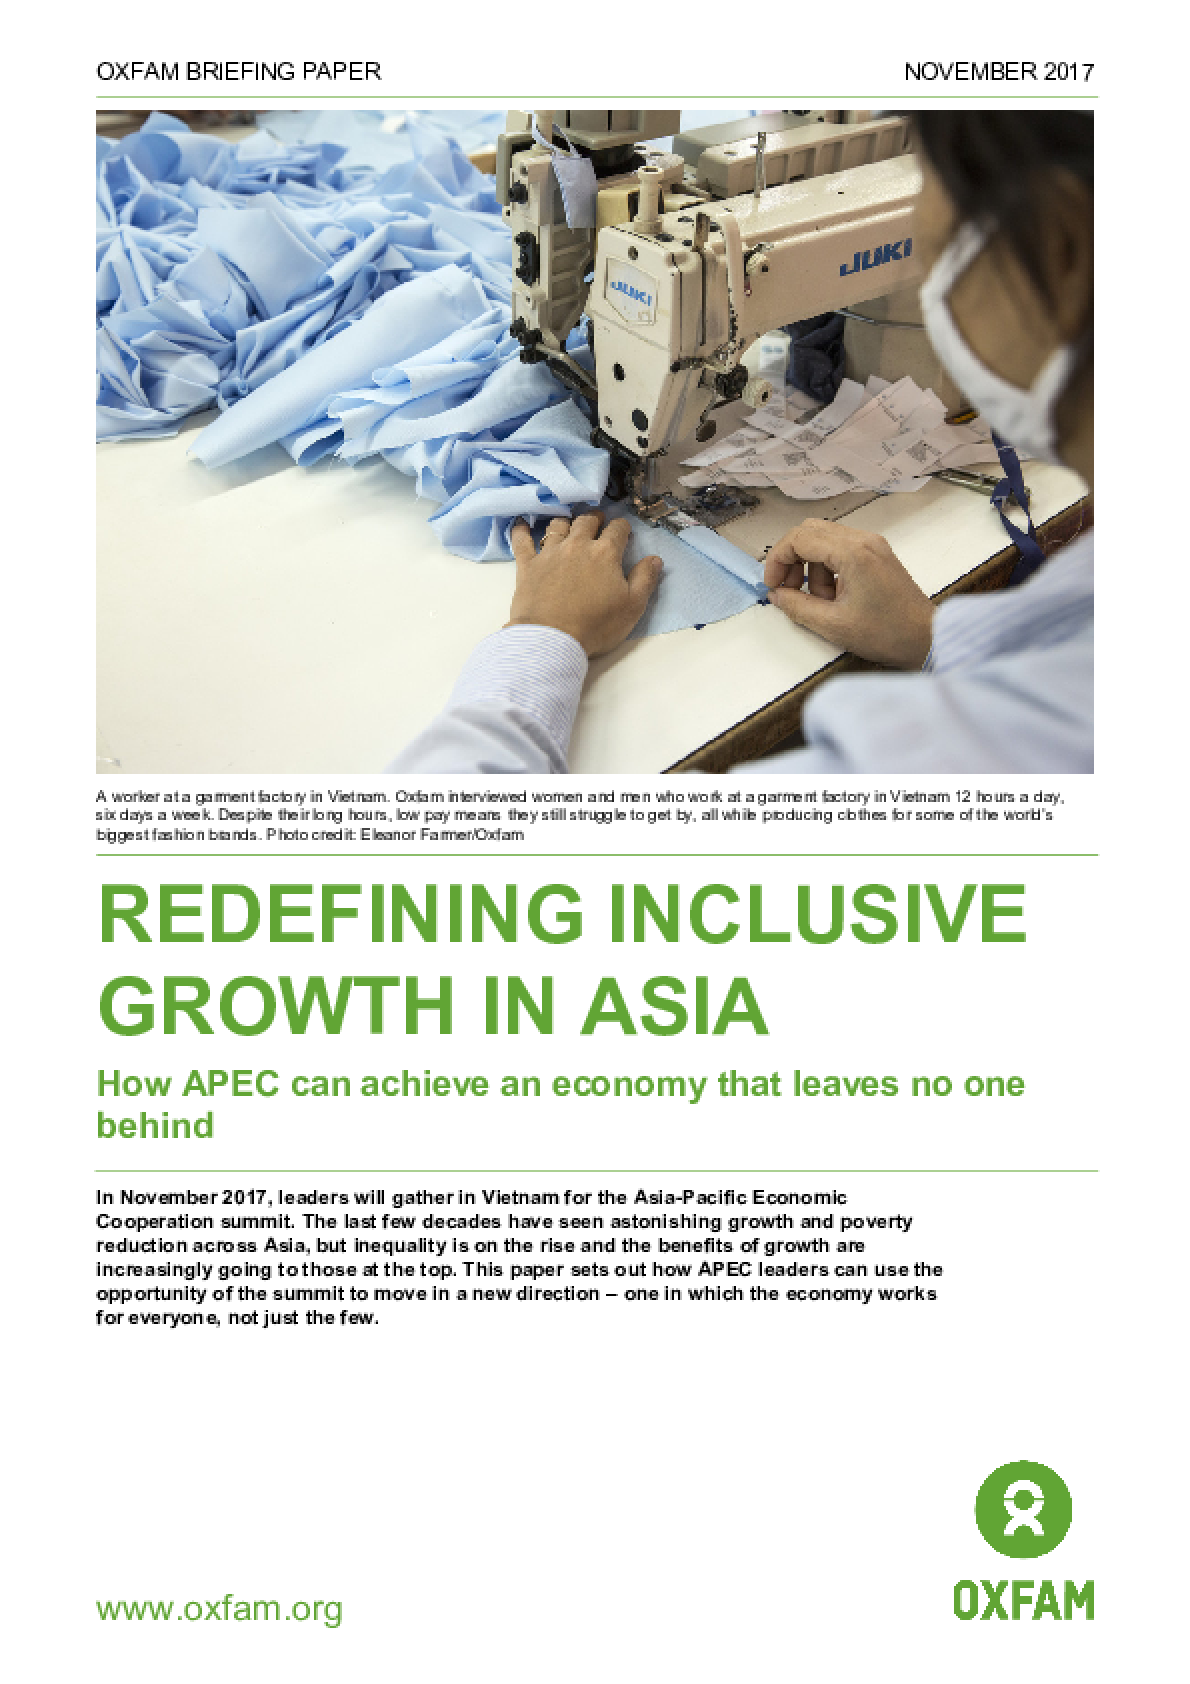 Redefining Inclusive Growth in Asia: How APEC Can Achieve an Economy That Leaves No One Behind